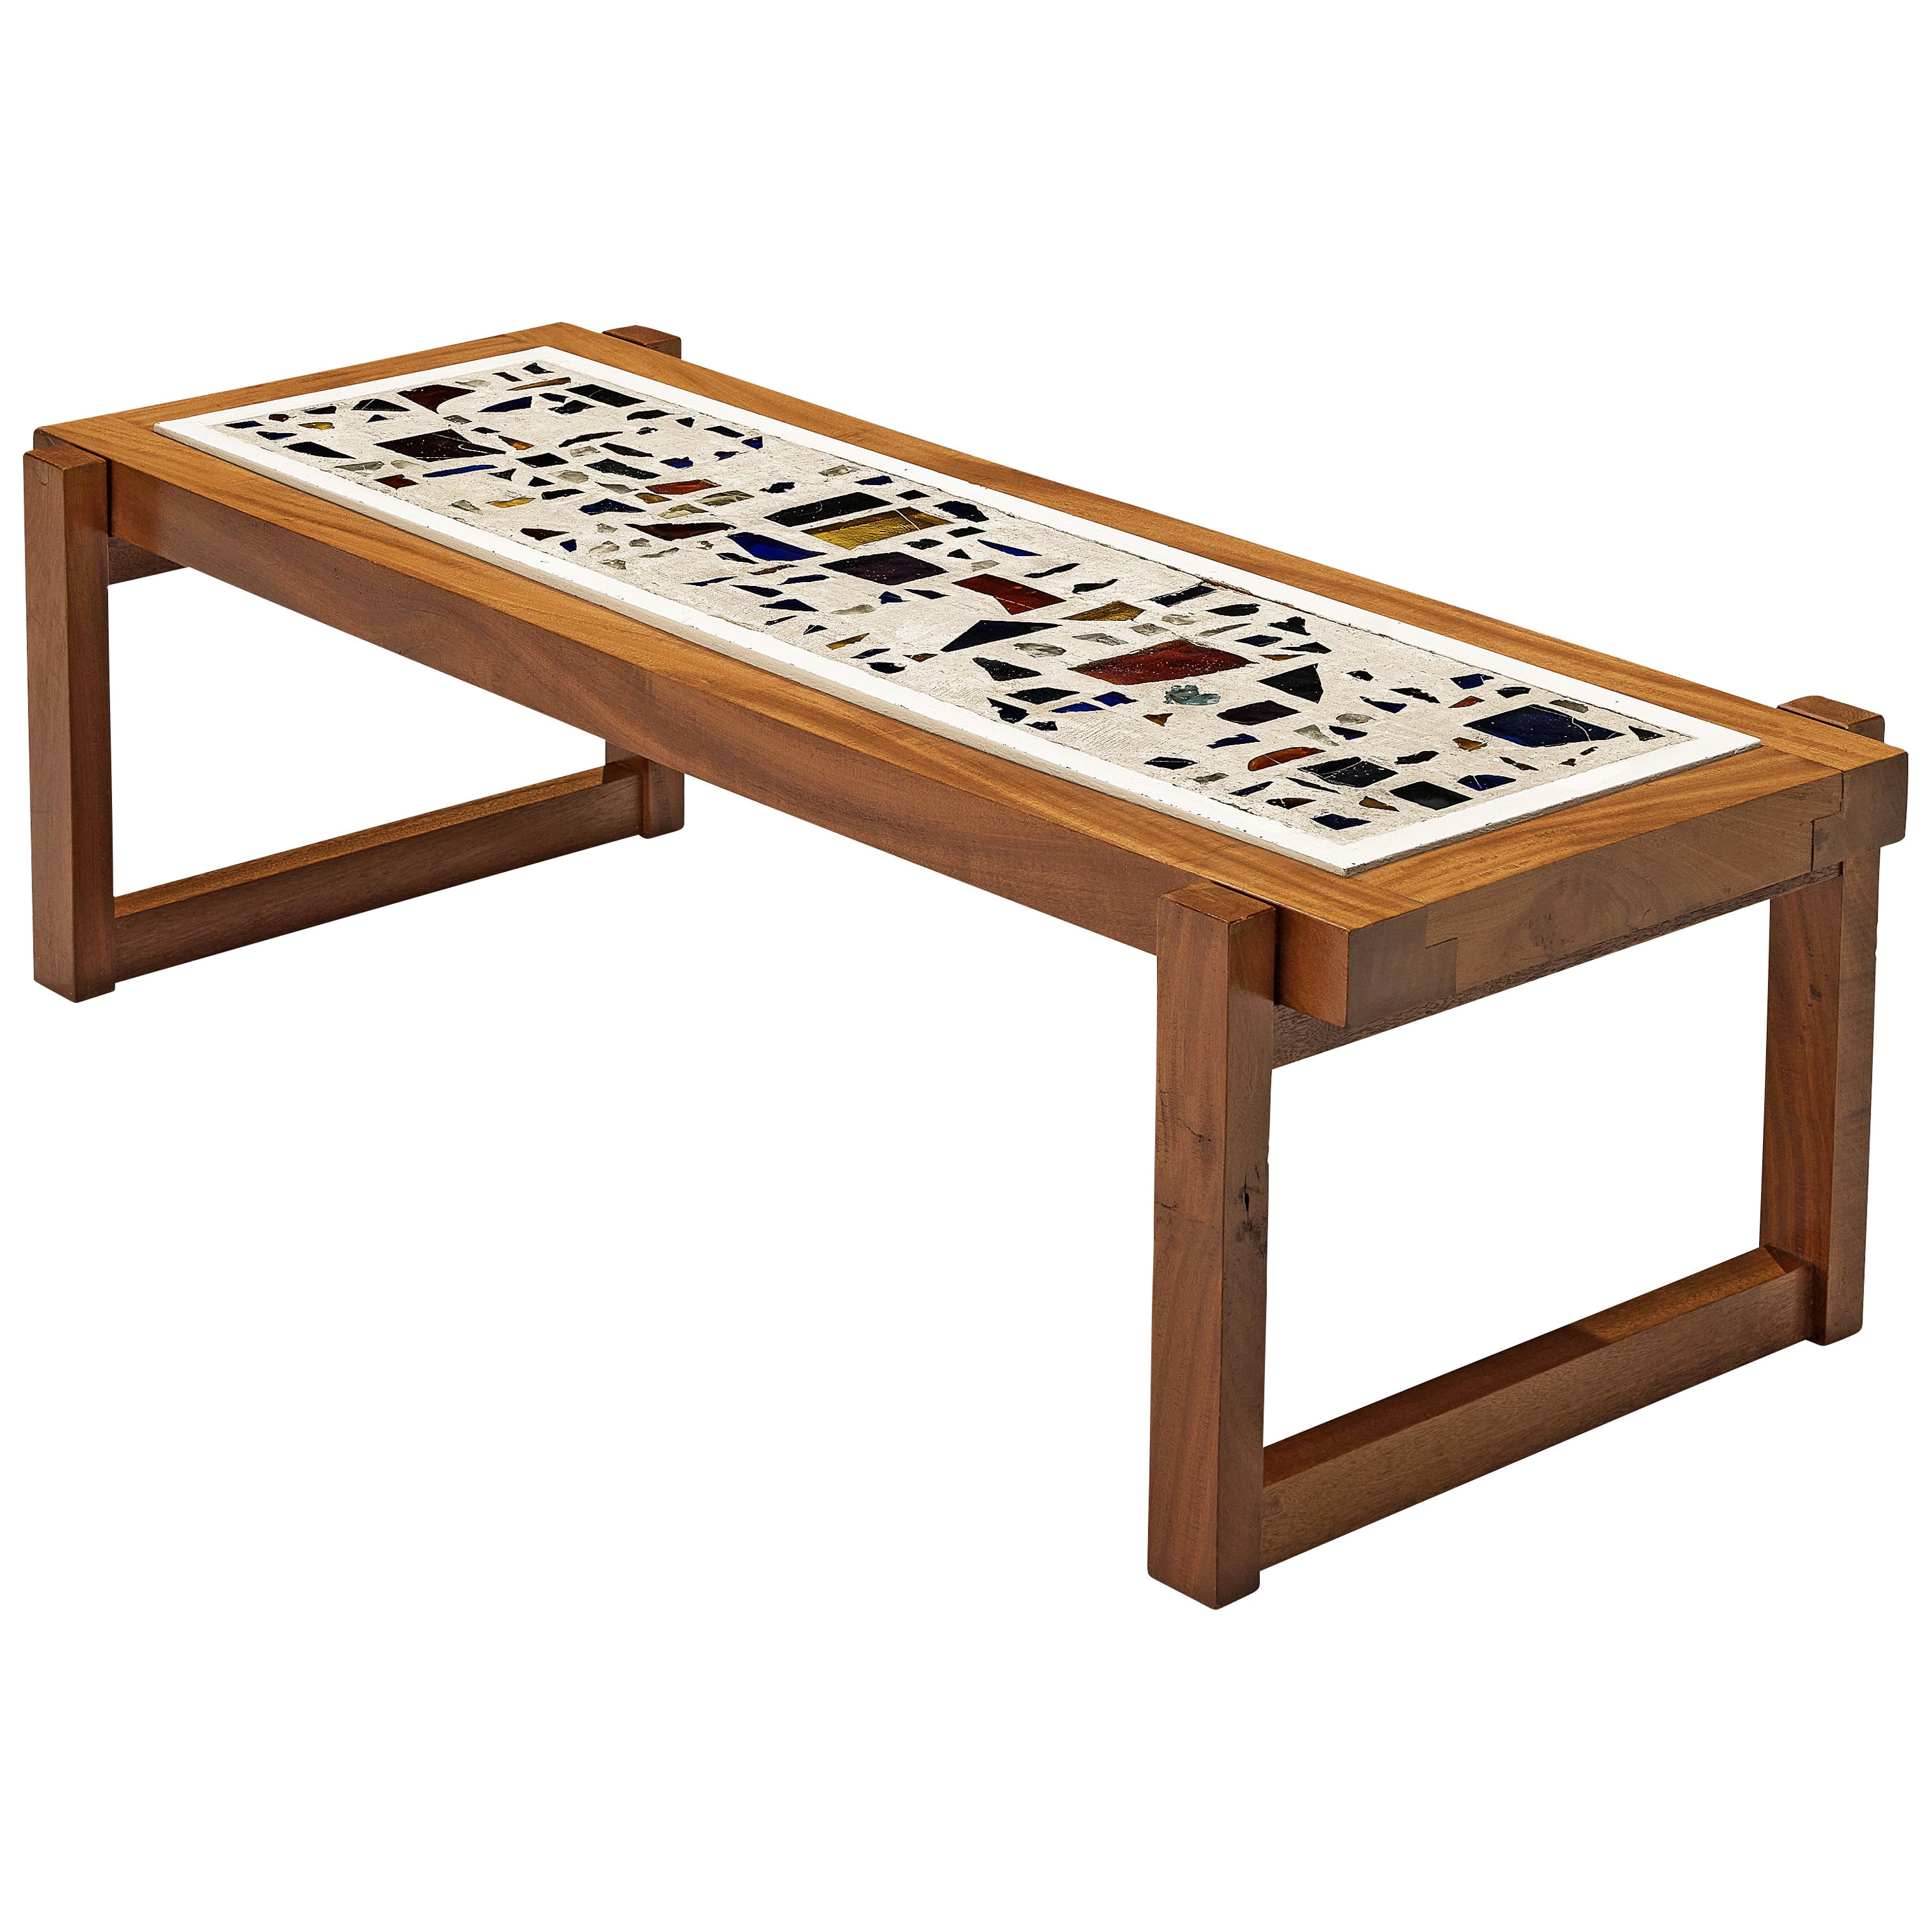 Handcrafted Coffee Table in Teak with Glass Fragments